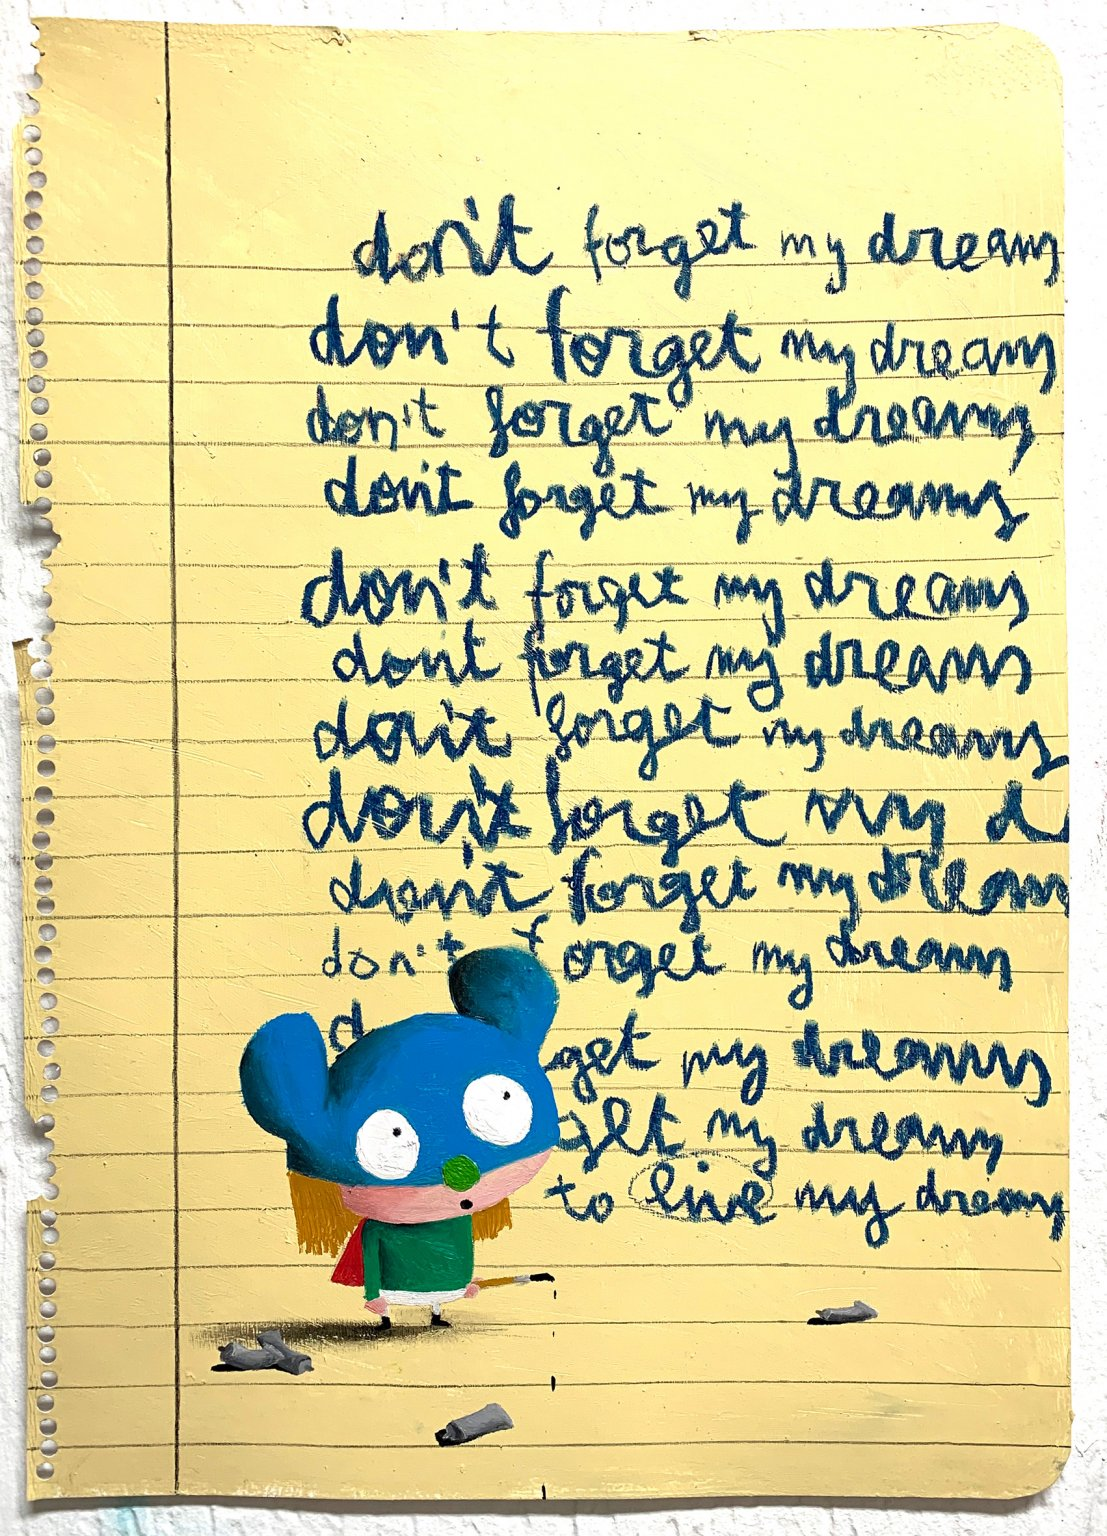 Don't forget my dreams